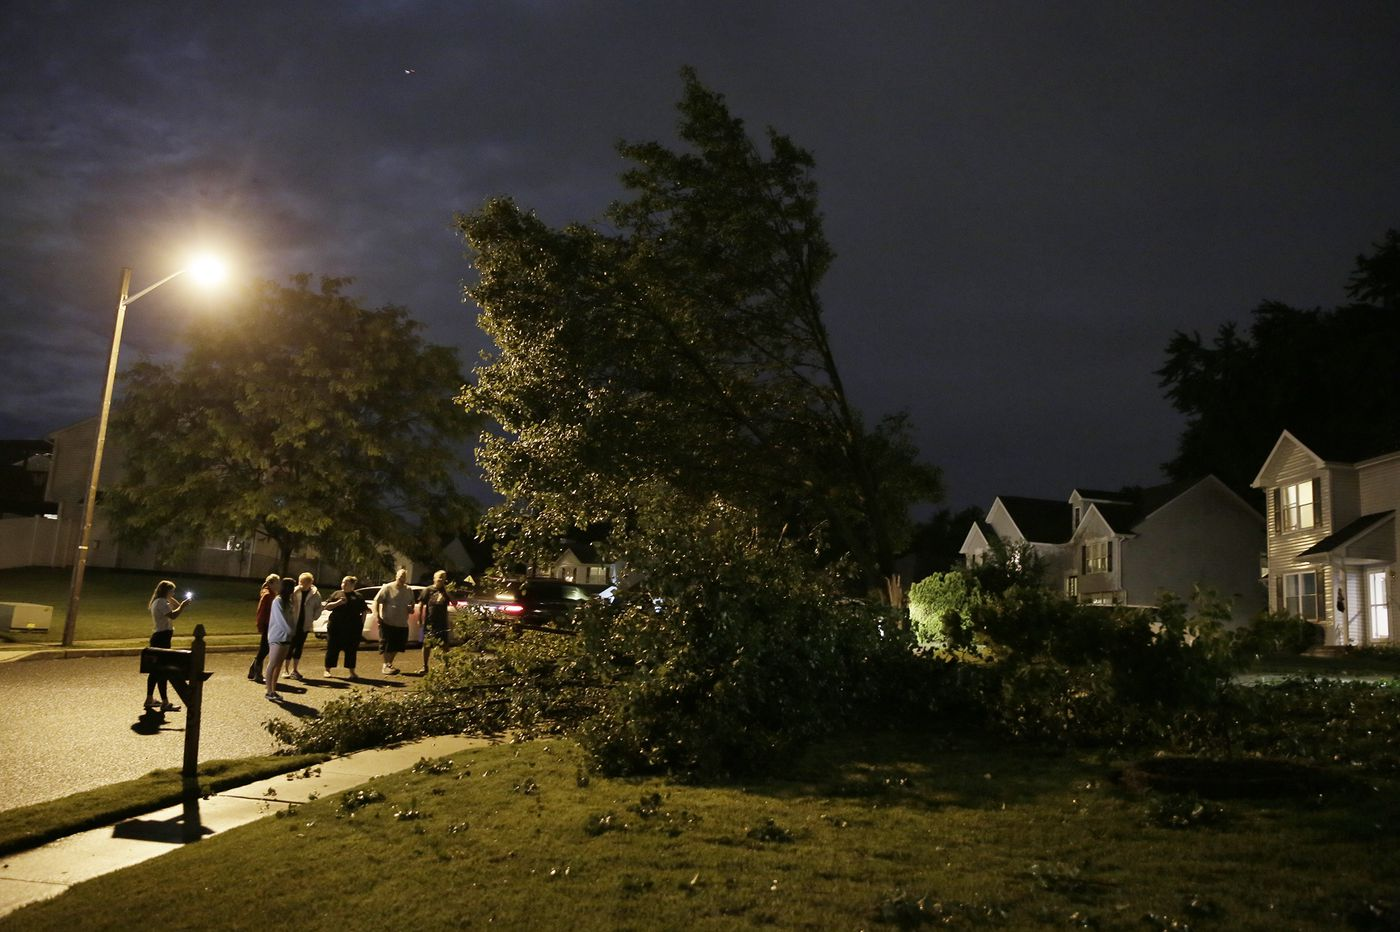 Tornado confirmed in Gloucester County, National Weather Service says